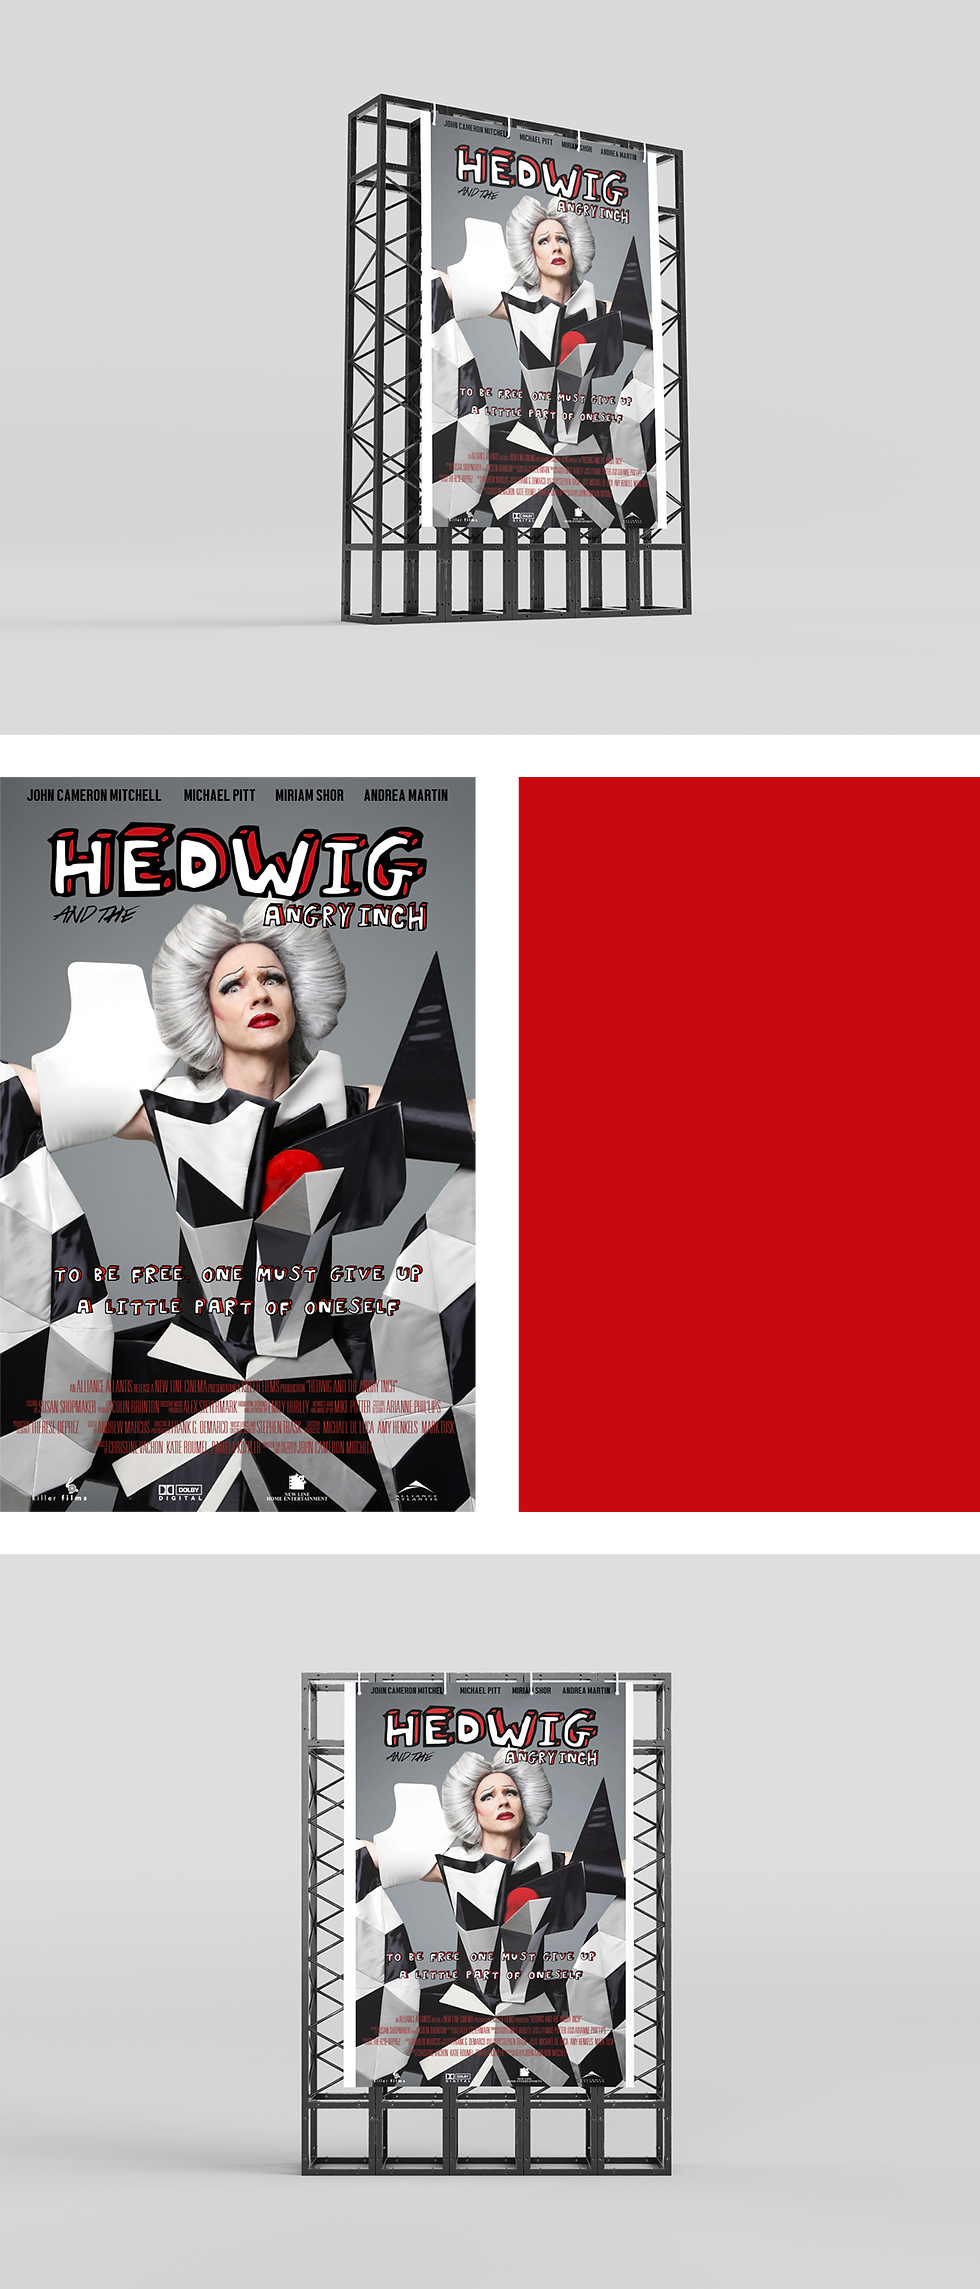 Design affiche film Hedwig and the angry inch